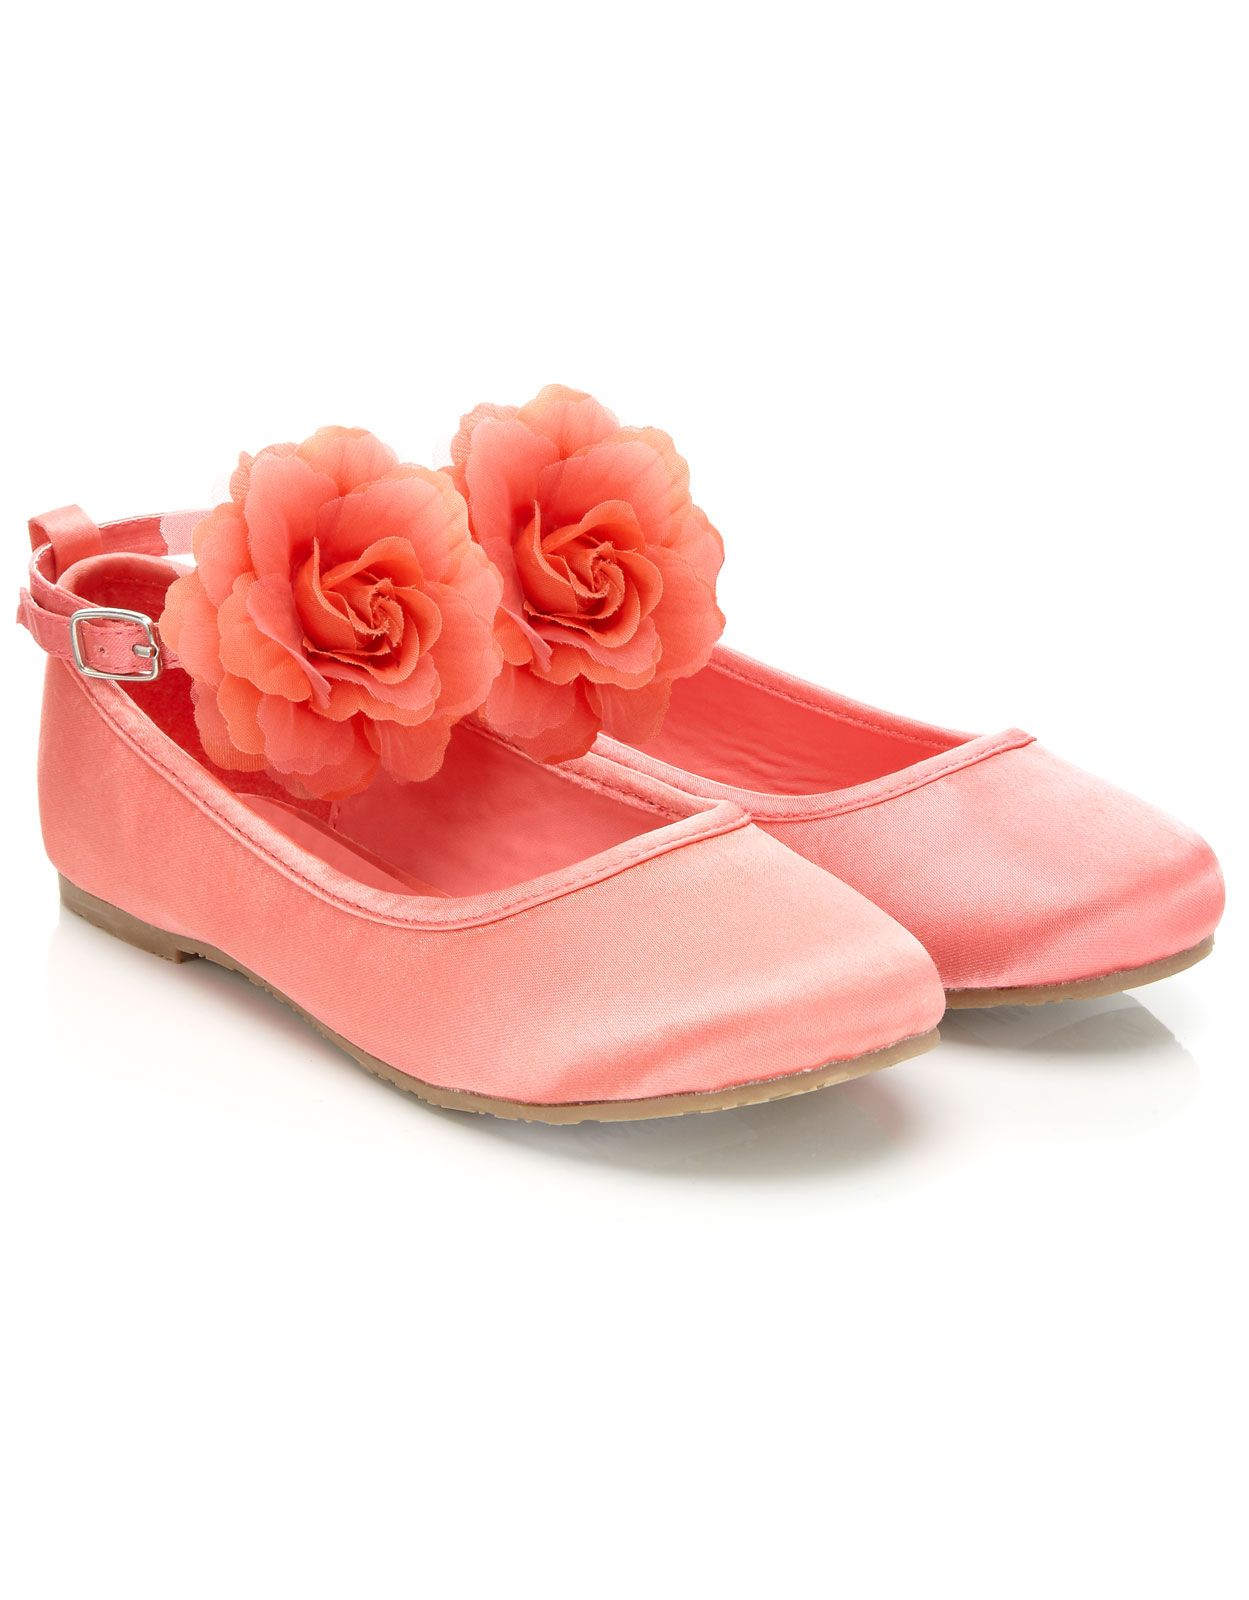 Dream Wedding Monsoon Coral Shoes